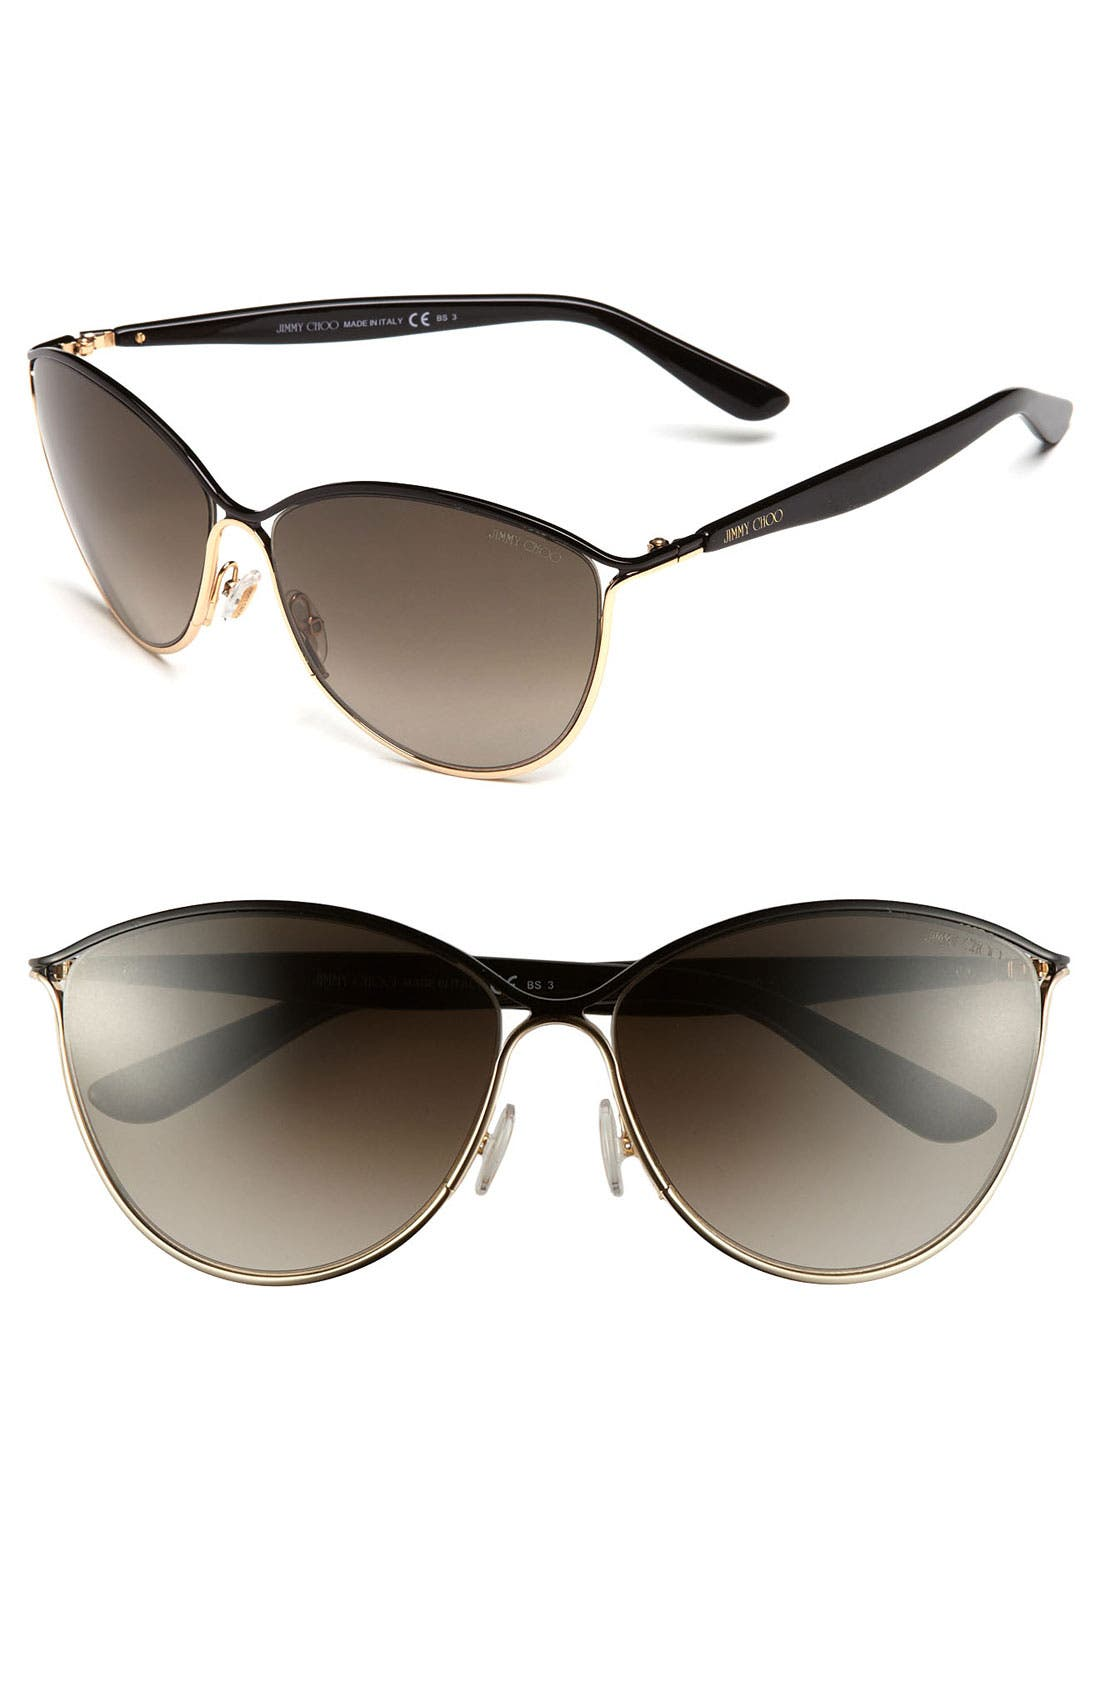 Alternate Image 1 Selected - Jimmy Choo 'Tanis' 59mm Cat's Eye Sunglasses